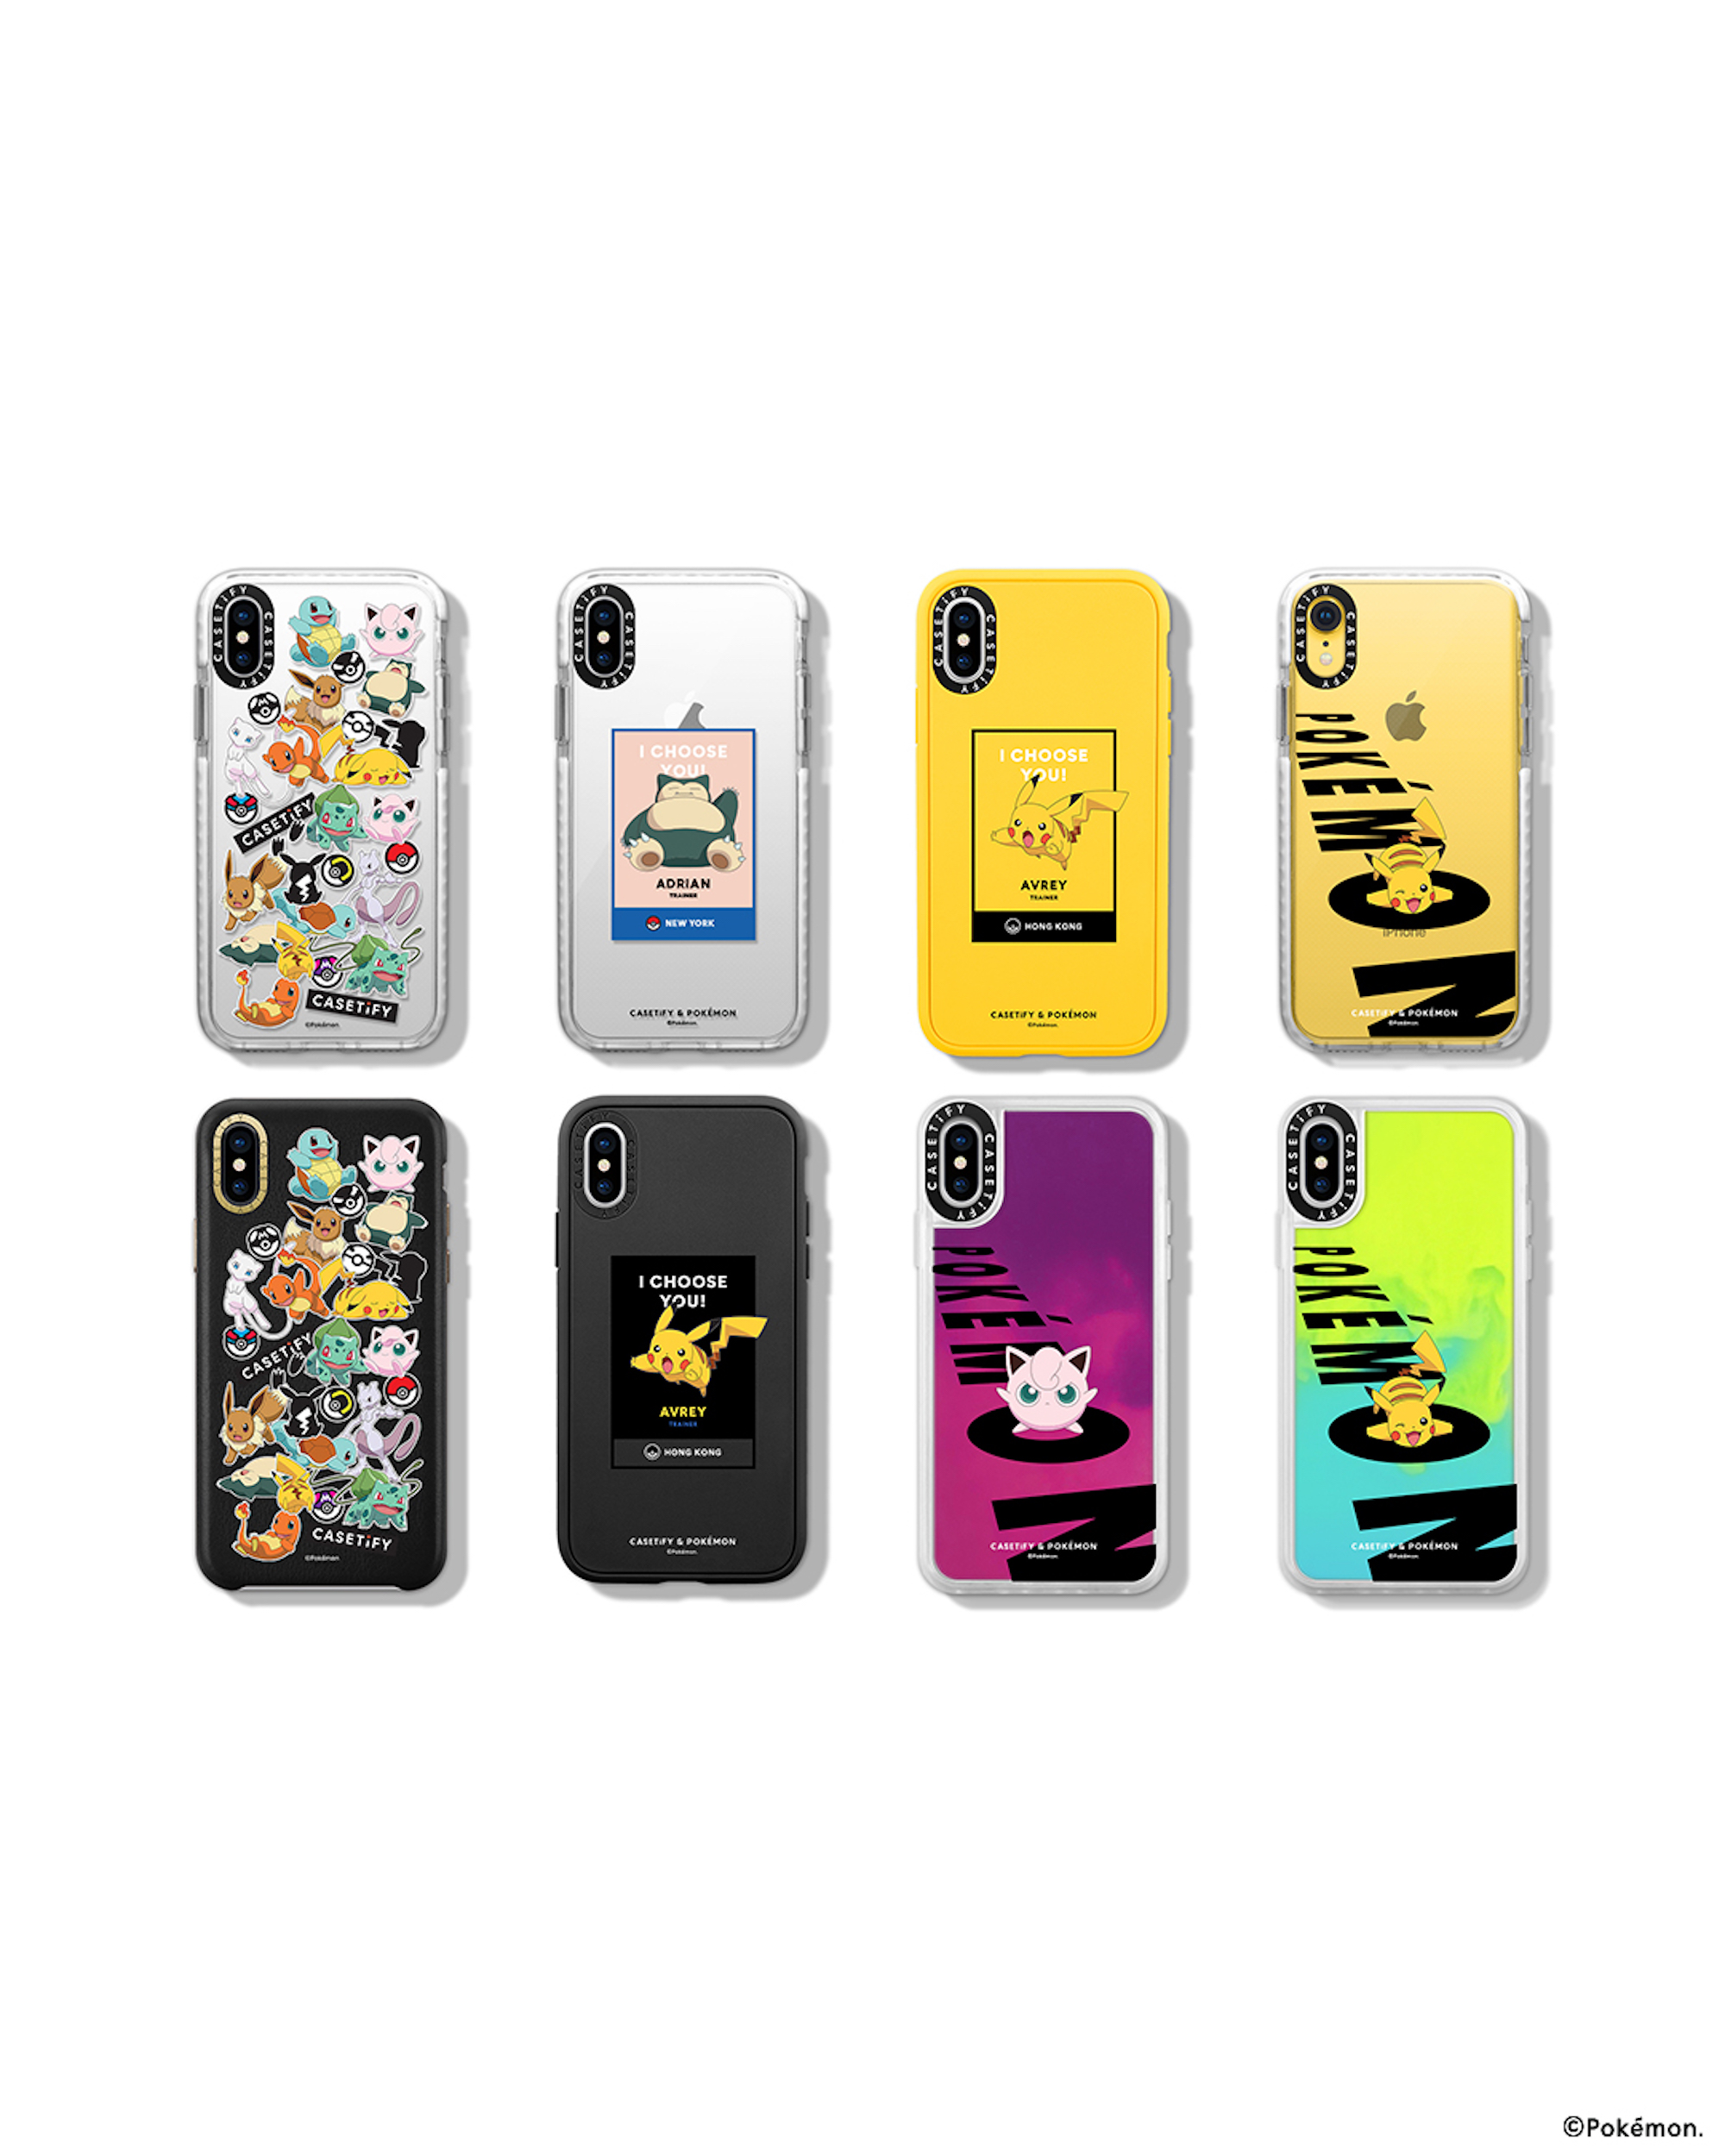 The CASETiFY & Pokémon Day and Night collection phone cases